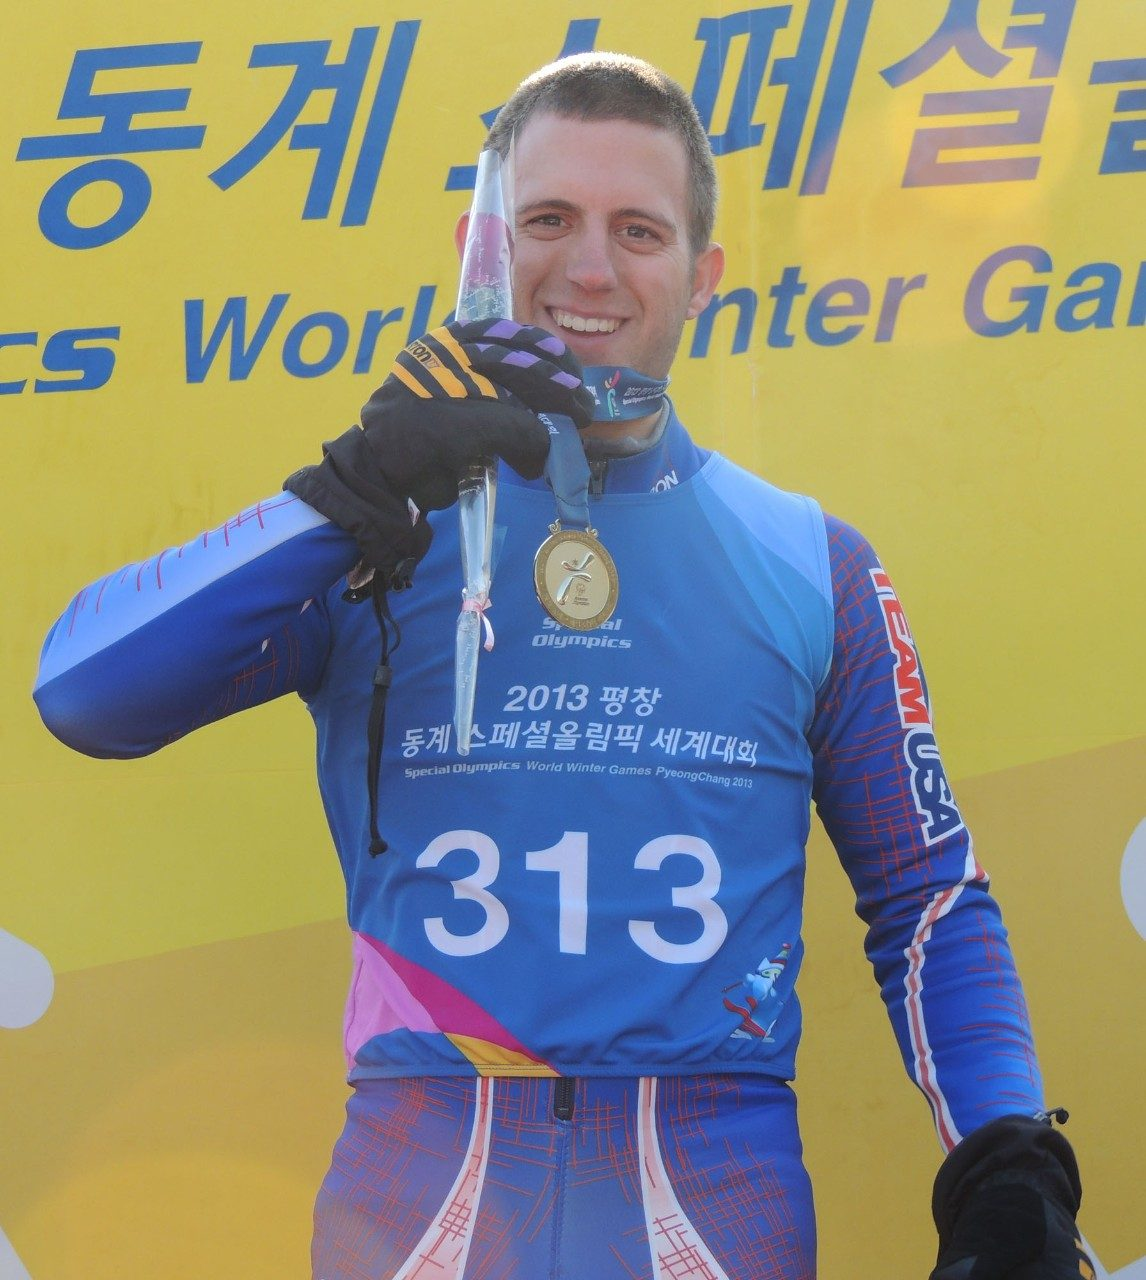 Ben Norris shows the gold medal he won in the Alpine Skiing Intermediate Super G event.